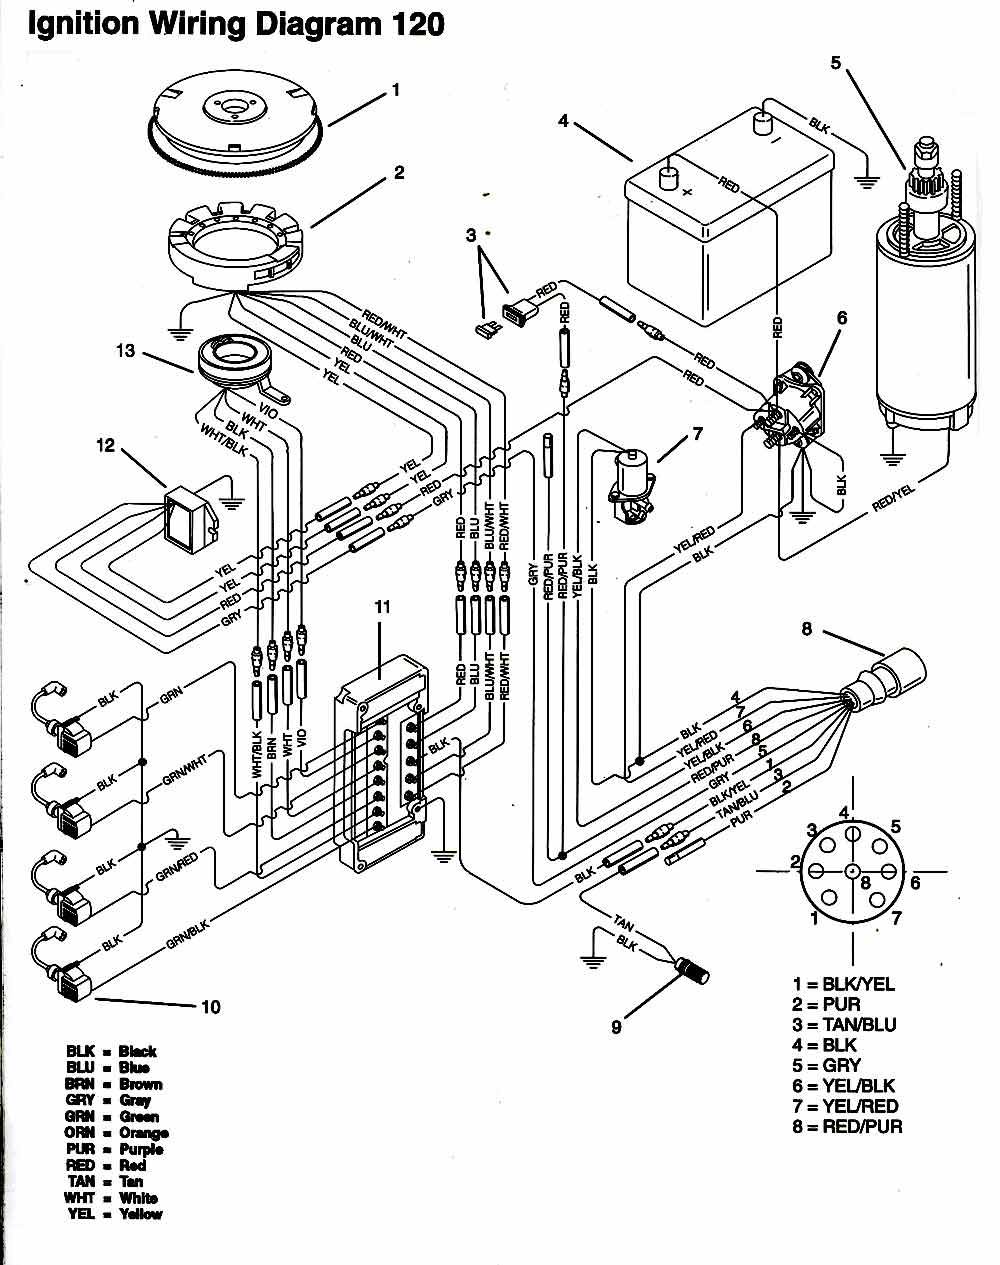 Yamaha 10 Pin Wiring Harness Diagram Great Installation Of G1a Ignition Diagrams Schema Rh 3 Valdeig Media De Outboard G1